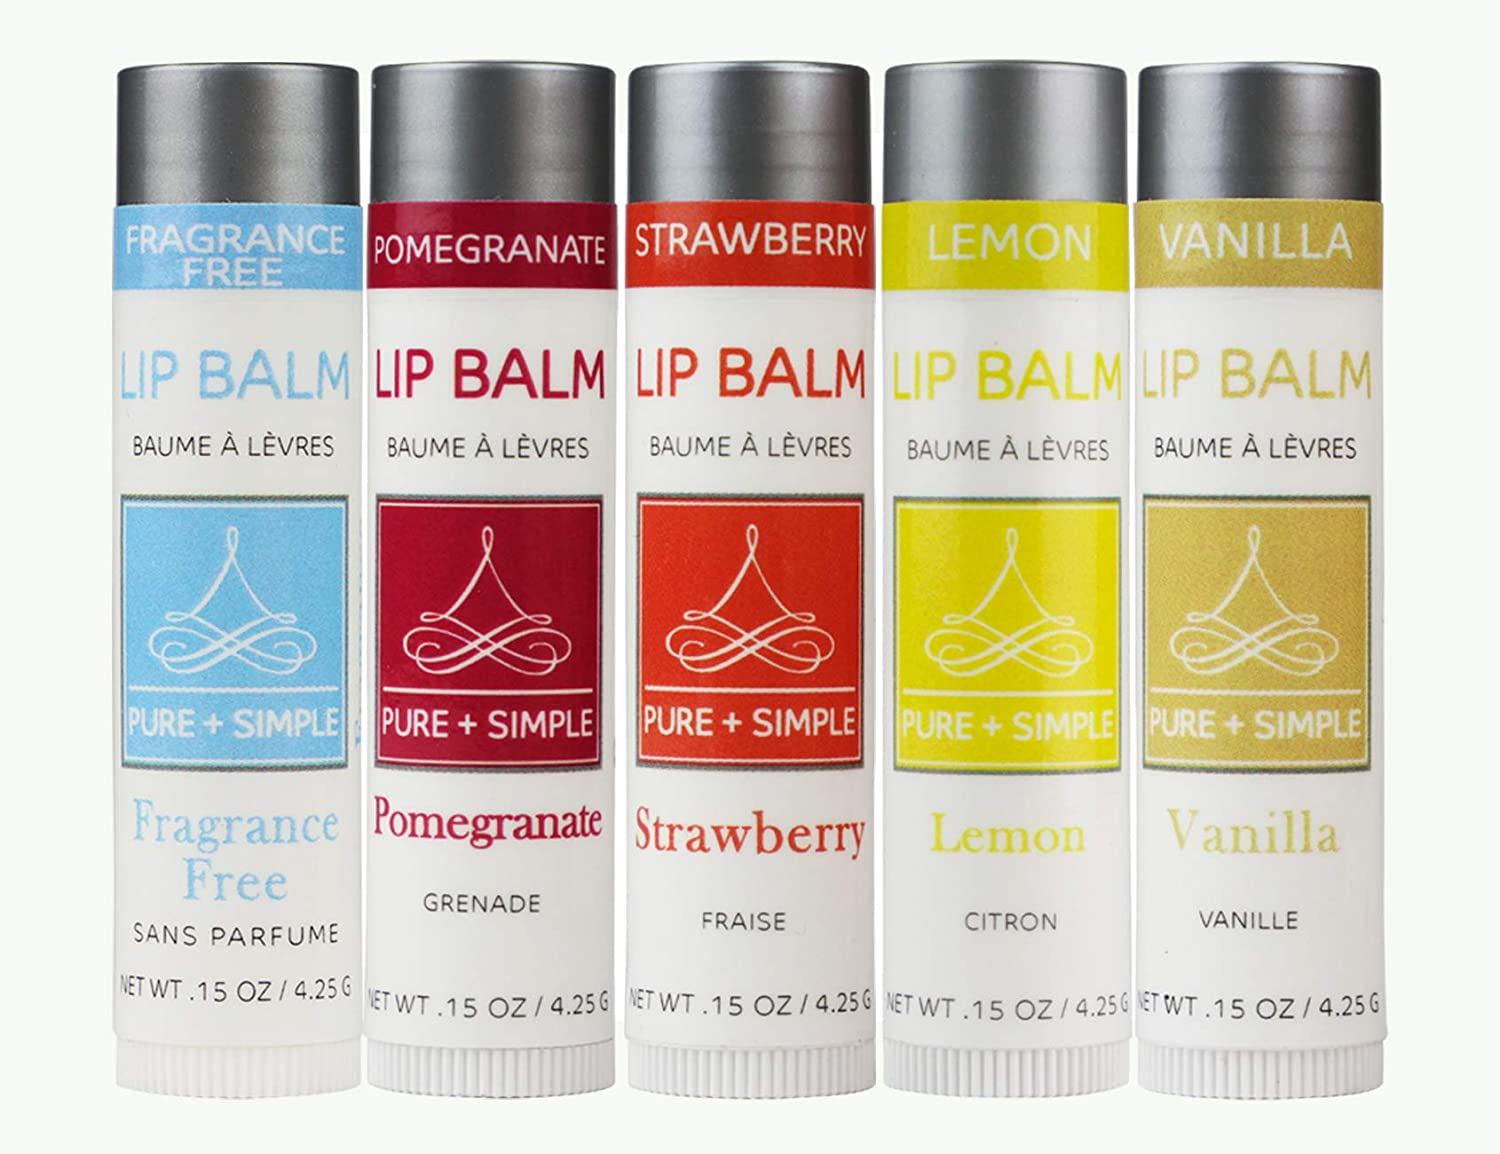 Vegan Lip Balm by PURE + SIMPLE Melody Lip Balm Collection Fragrance Free, Pomegranate, Strawberry, Lemon, Vanilla, 5 Tube Set, Beeswax Free, with Candelilla Wax, Moisturize Dry, Chapped, Lips